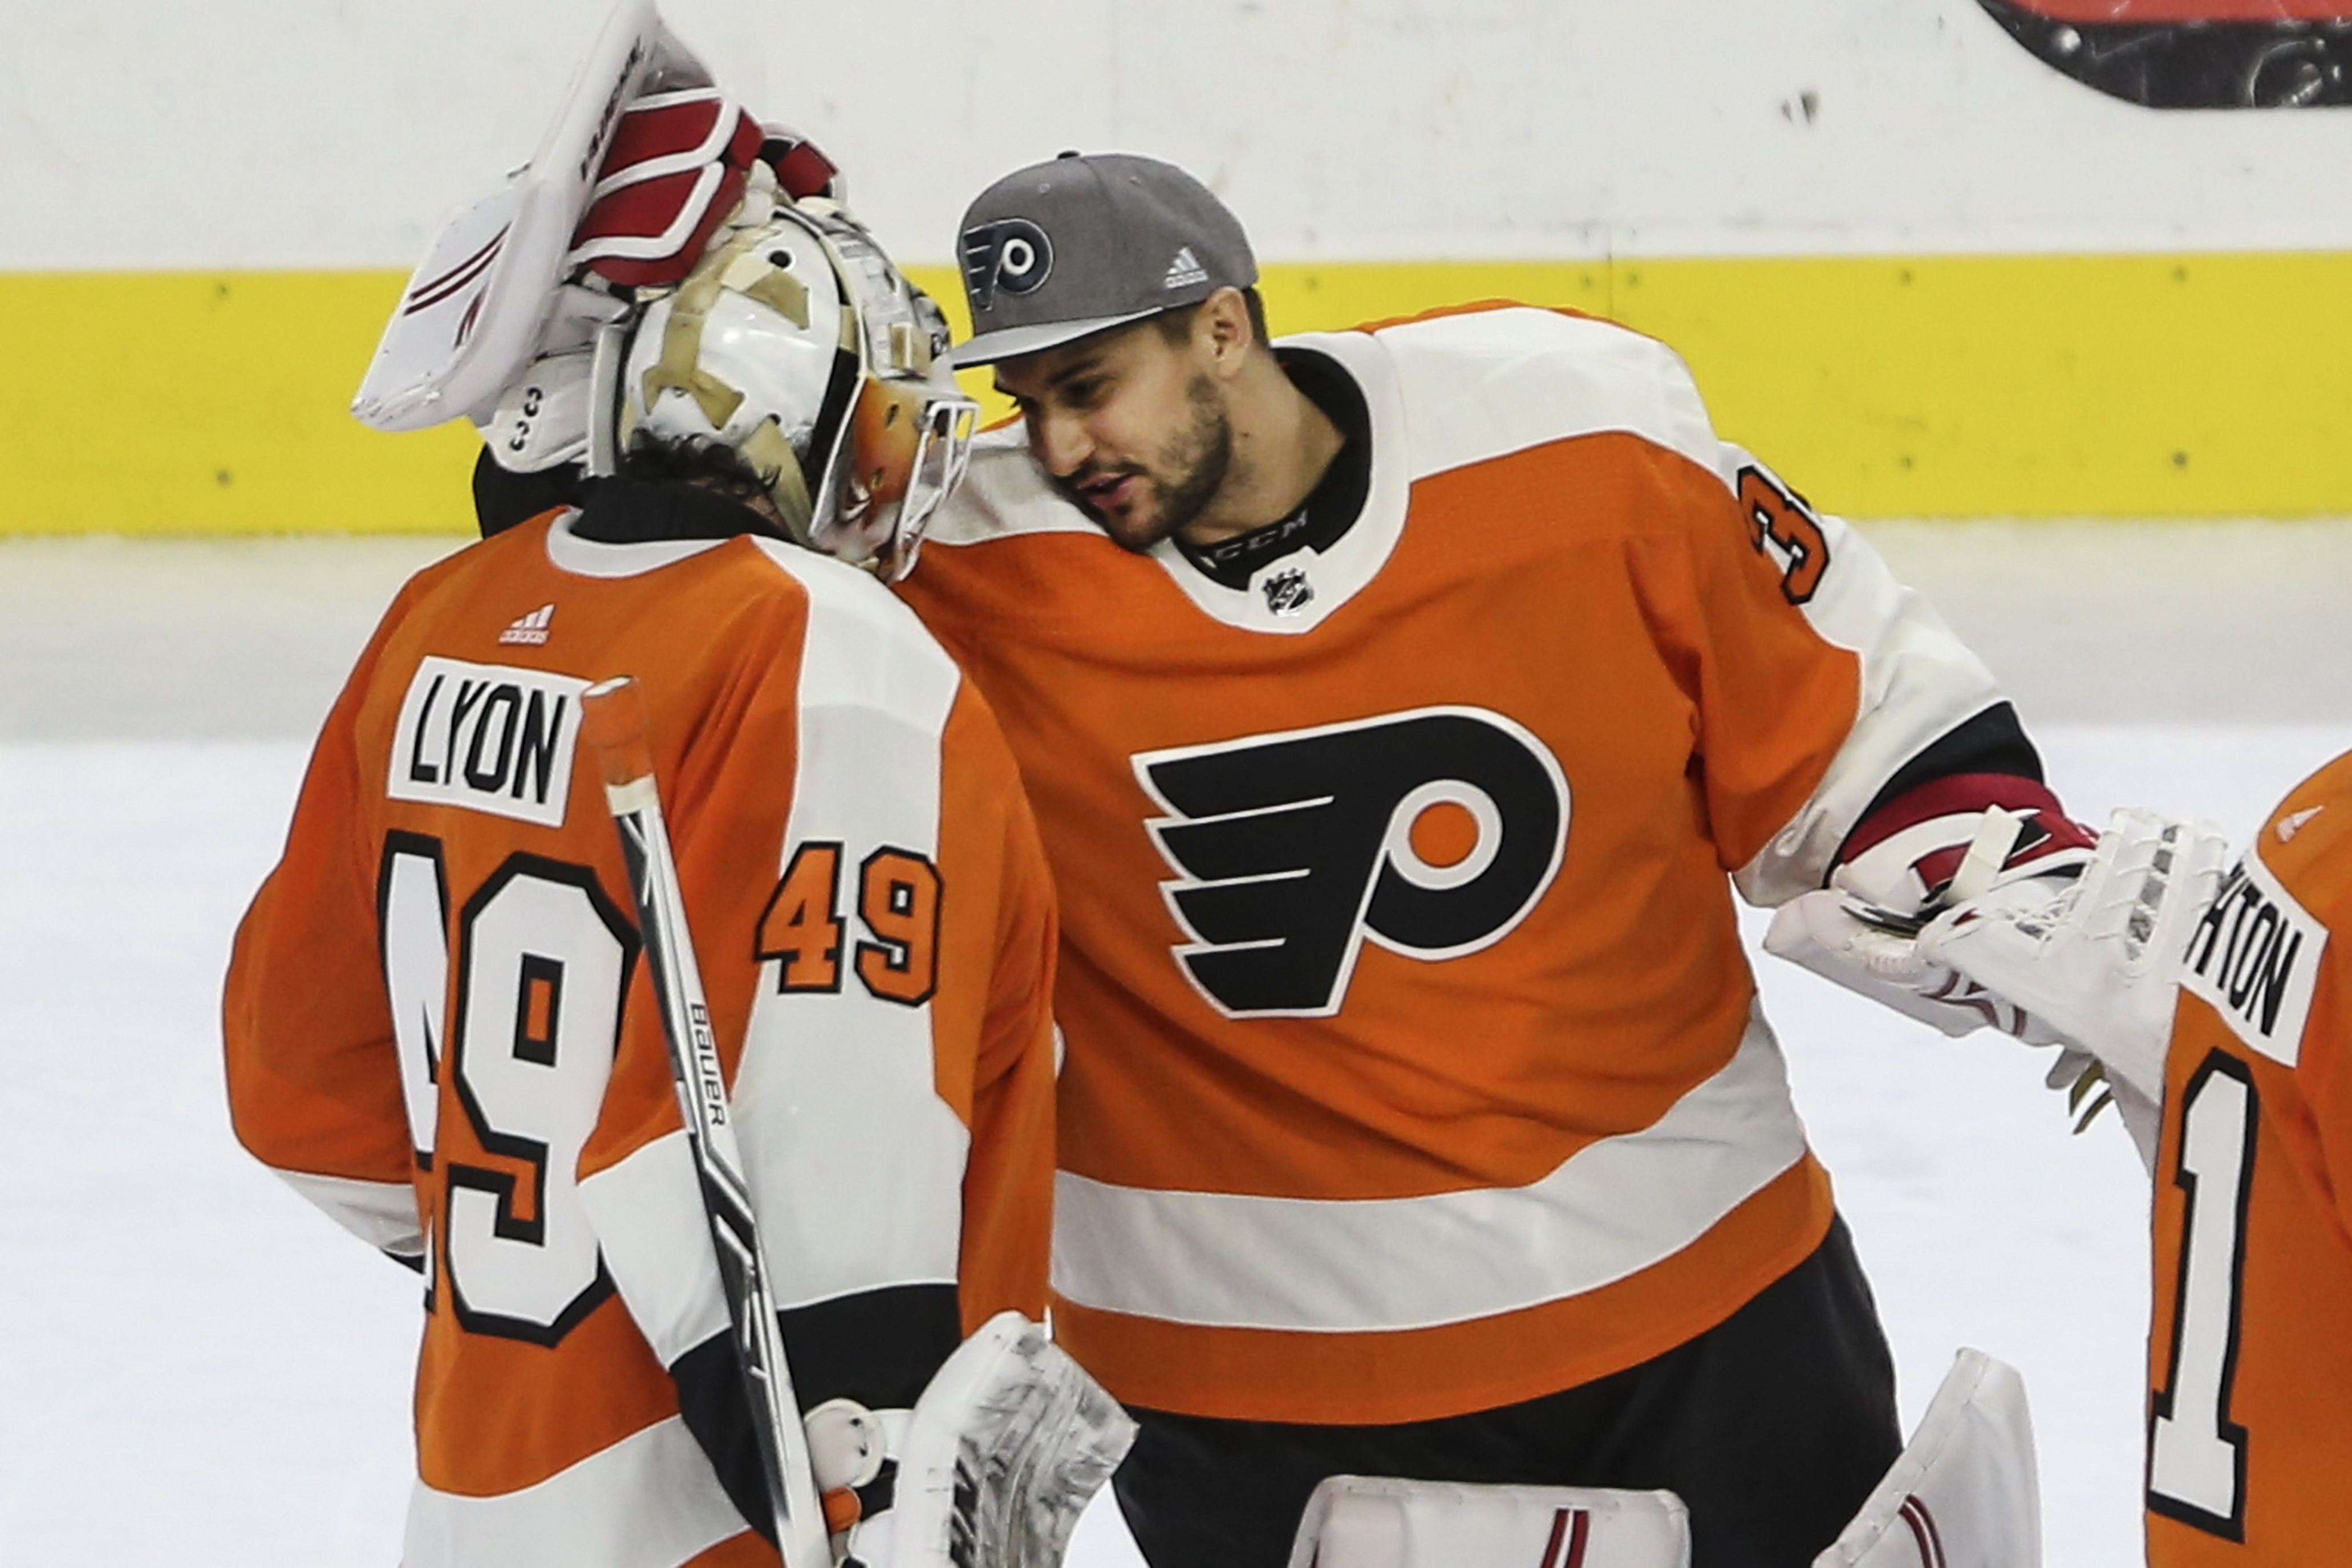 Alex Lyon (left) is congratulated by new teammate Petr Mrazek, who was acquired from Detroit on Monday night.